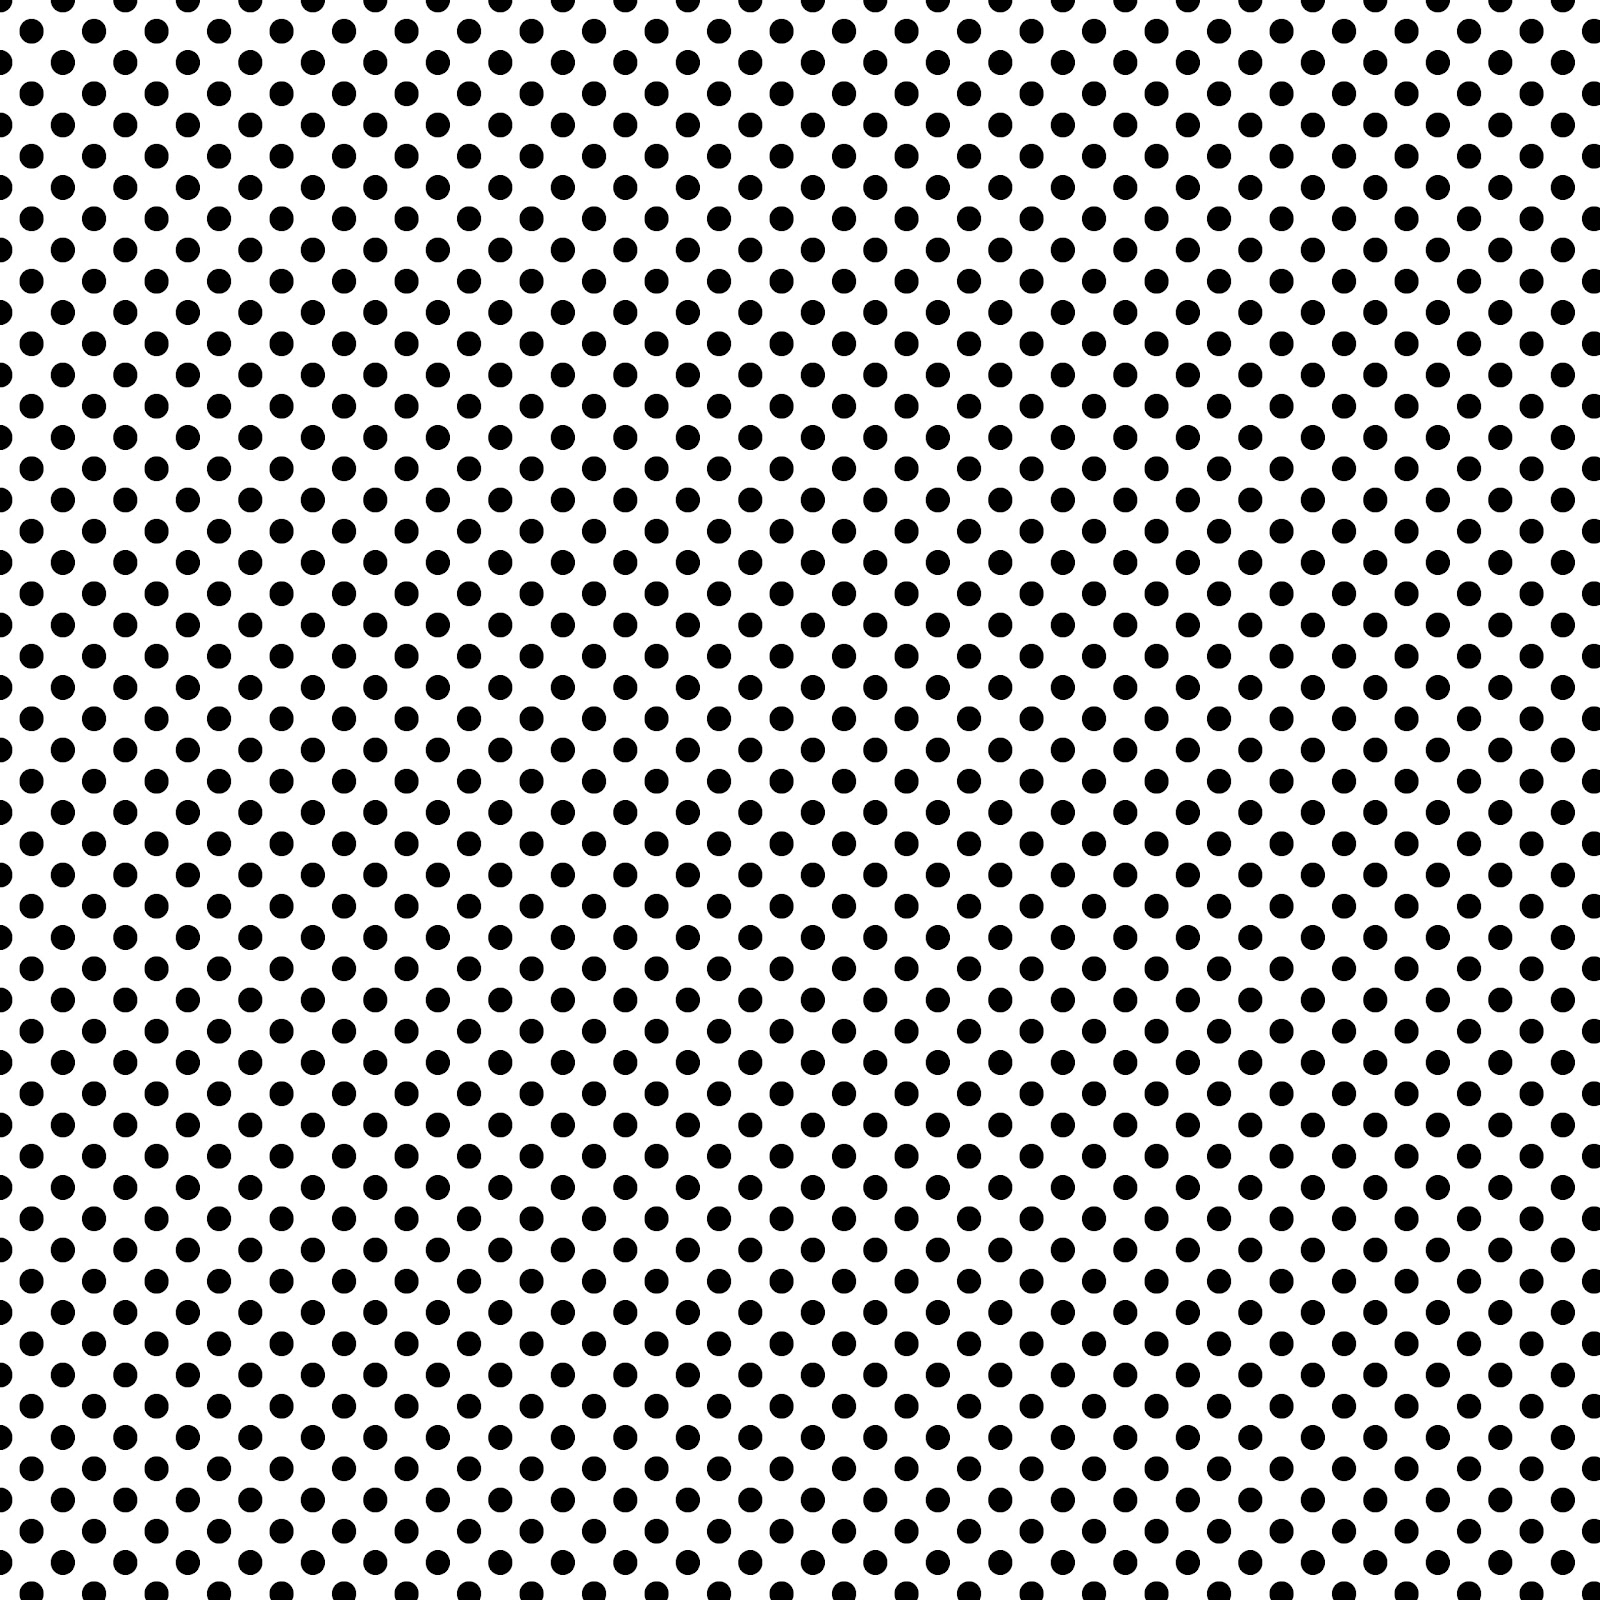 Black and white polka dot pattern - photo#11